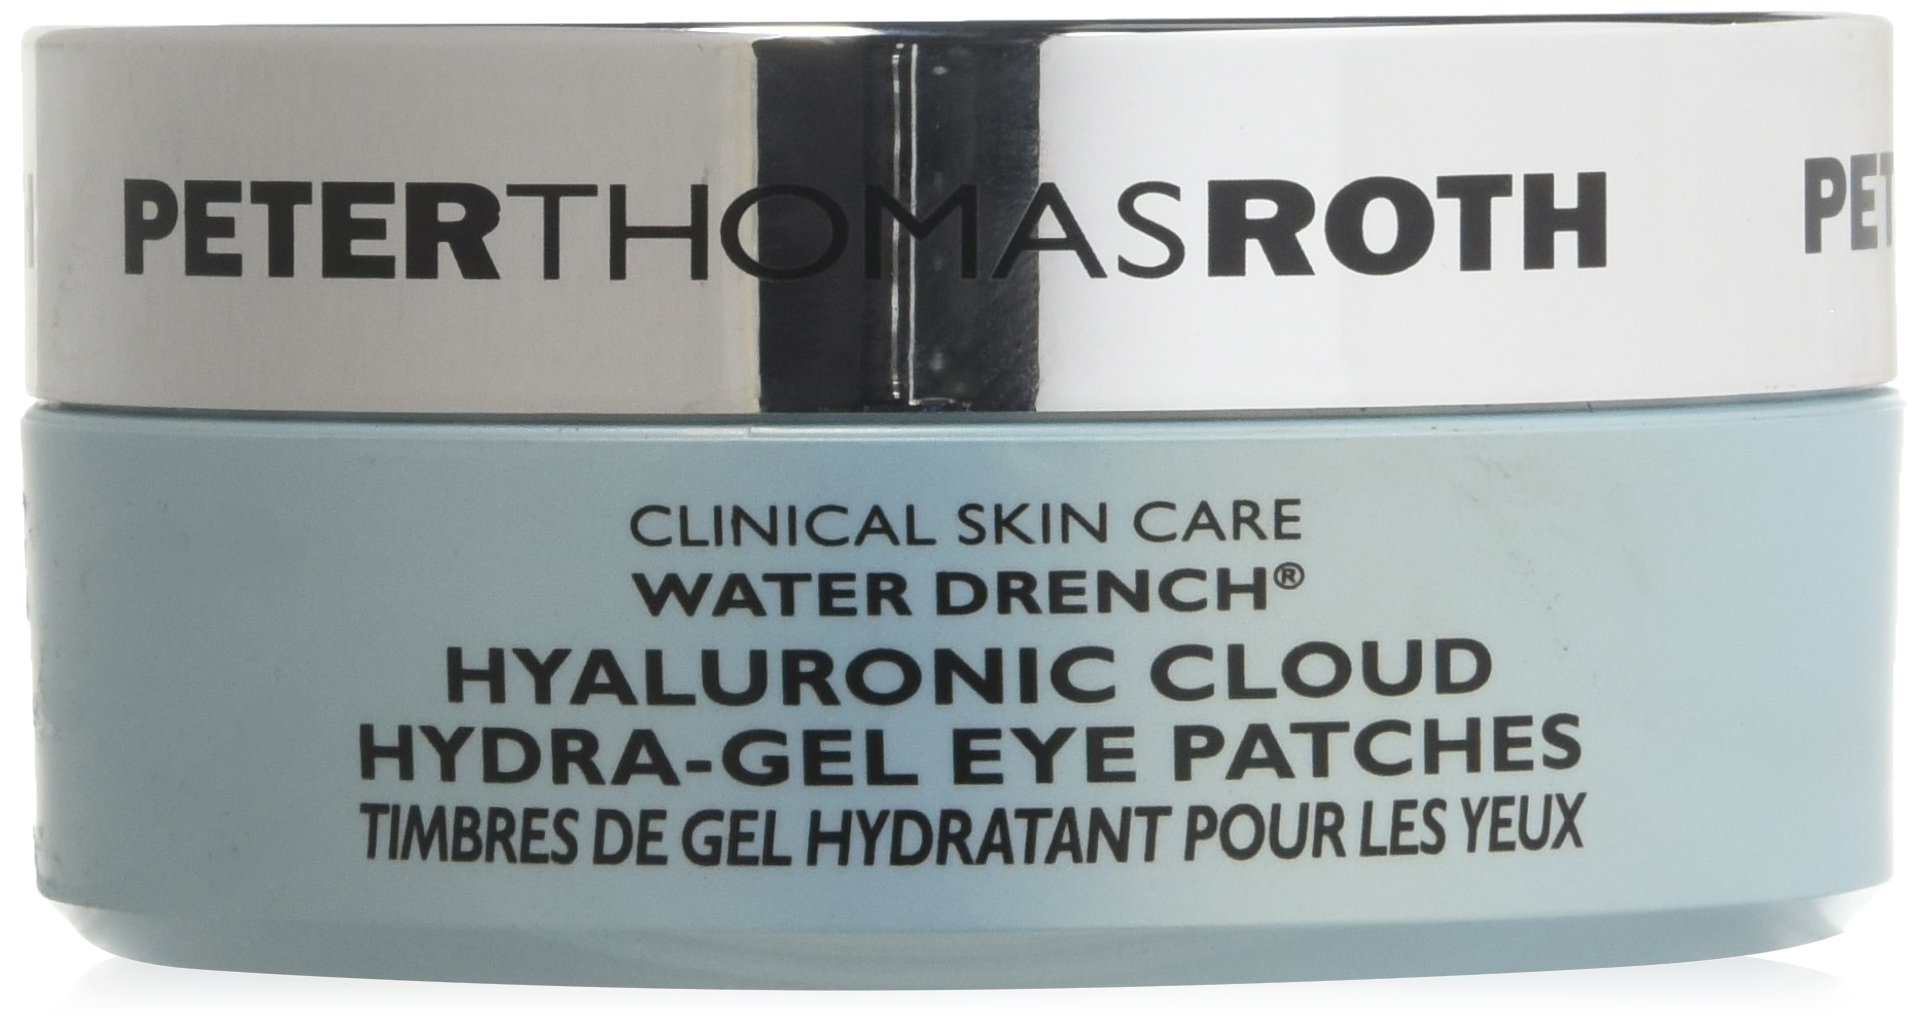 Peter Thomas Roth Water Drench Hydra-Gel Eye Patches, 60 Count